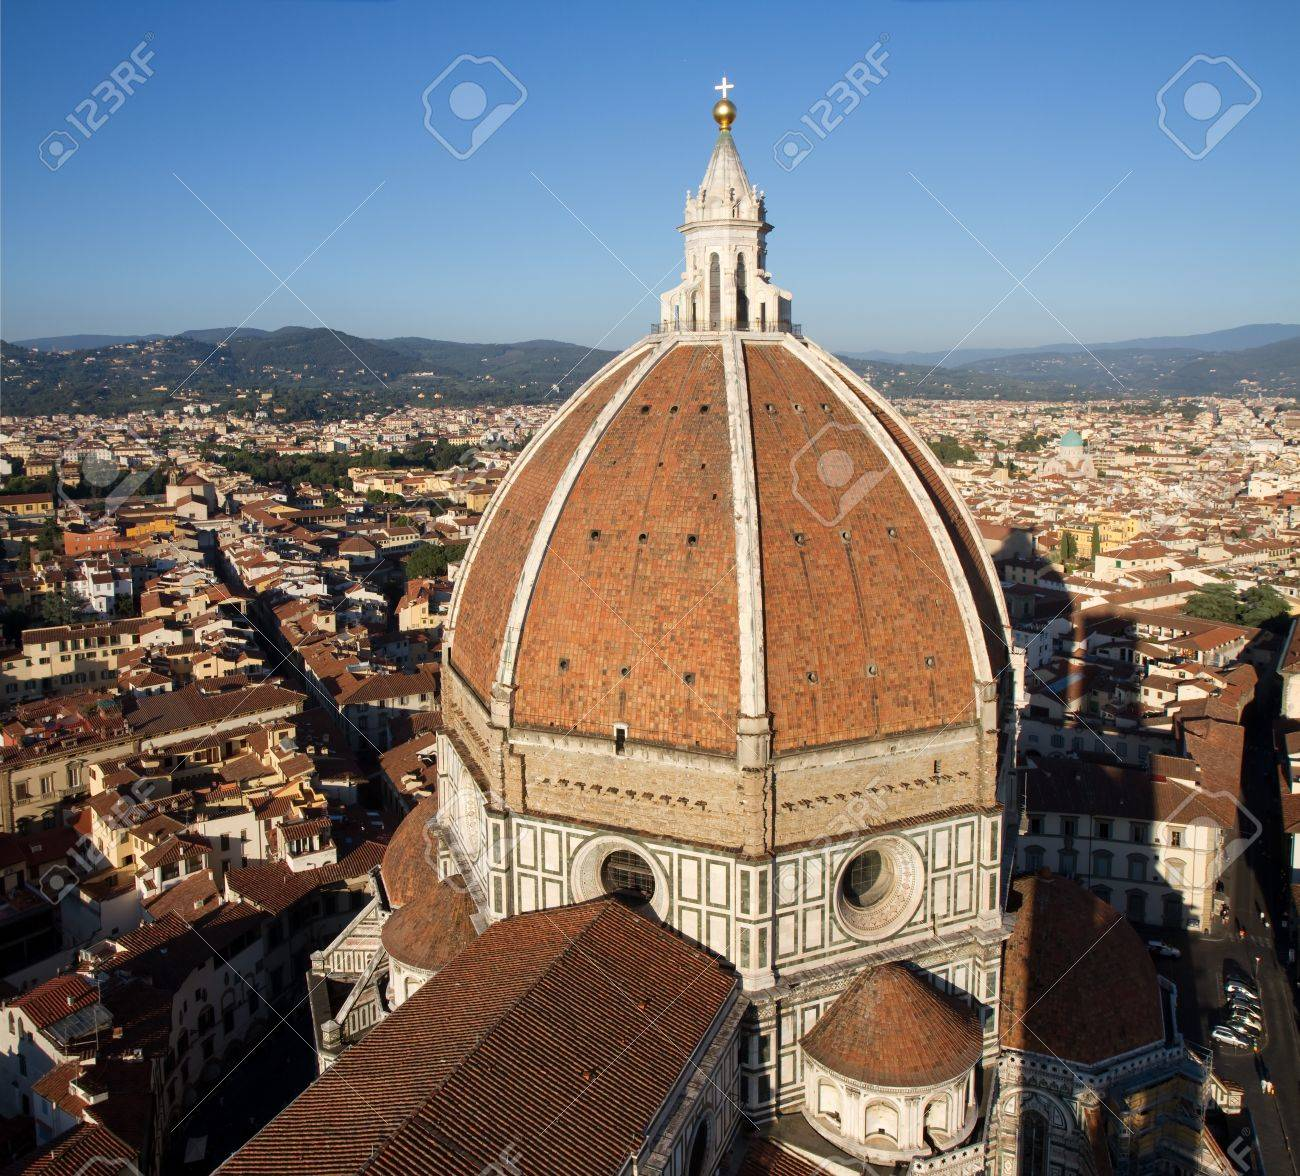 Dome of Florence cathedral as seen from the Bell Tower, Tuscany, Italy Stock Photo - 8576160